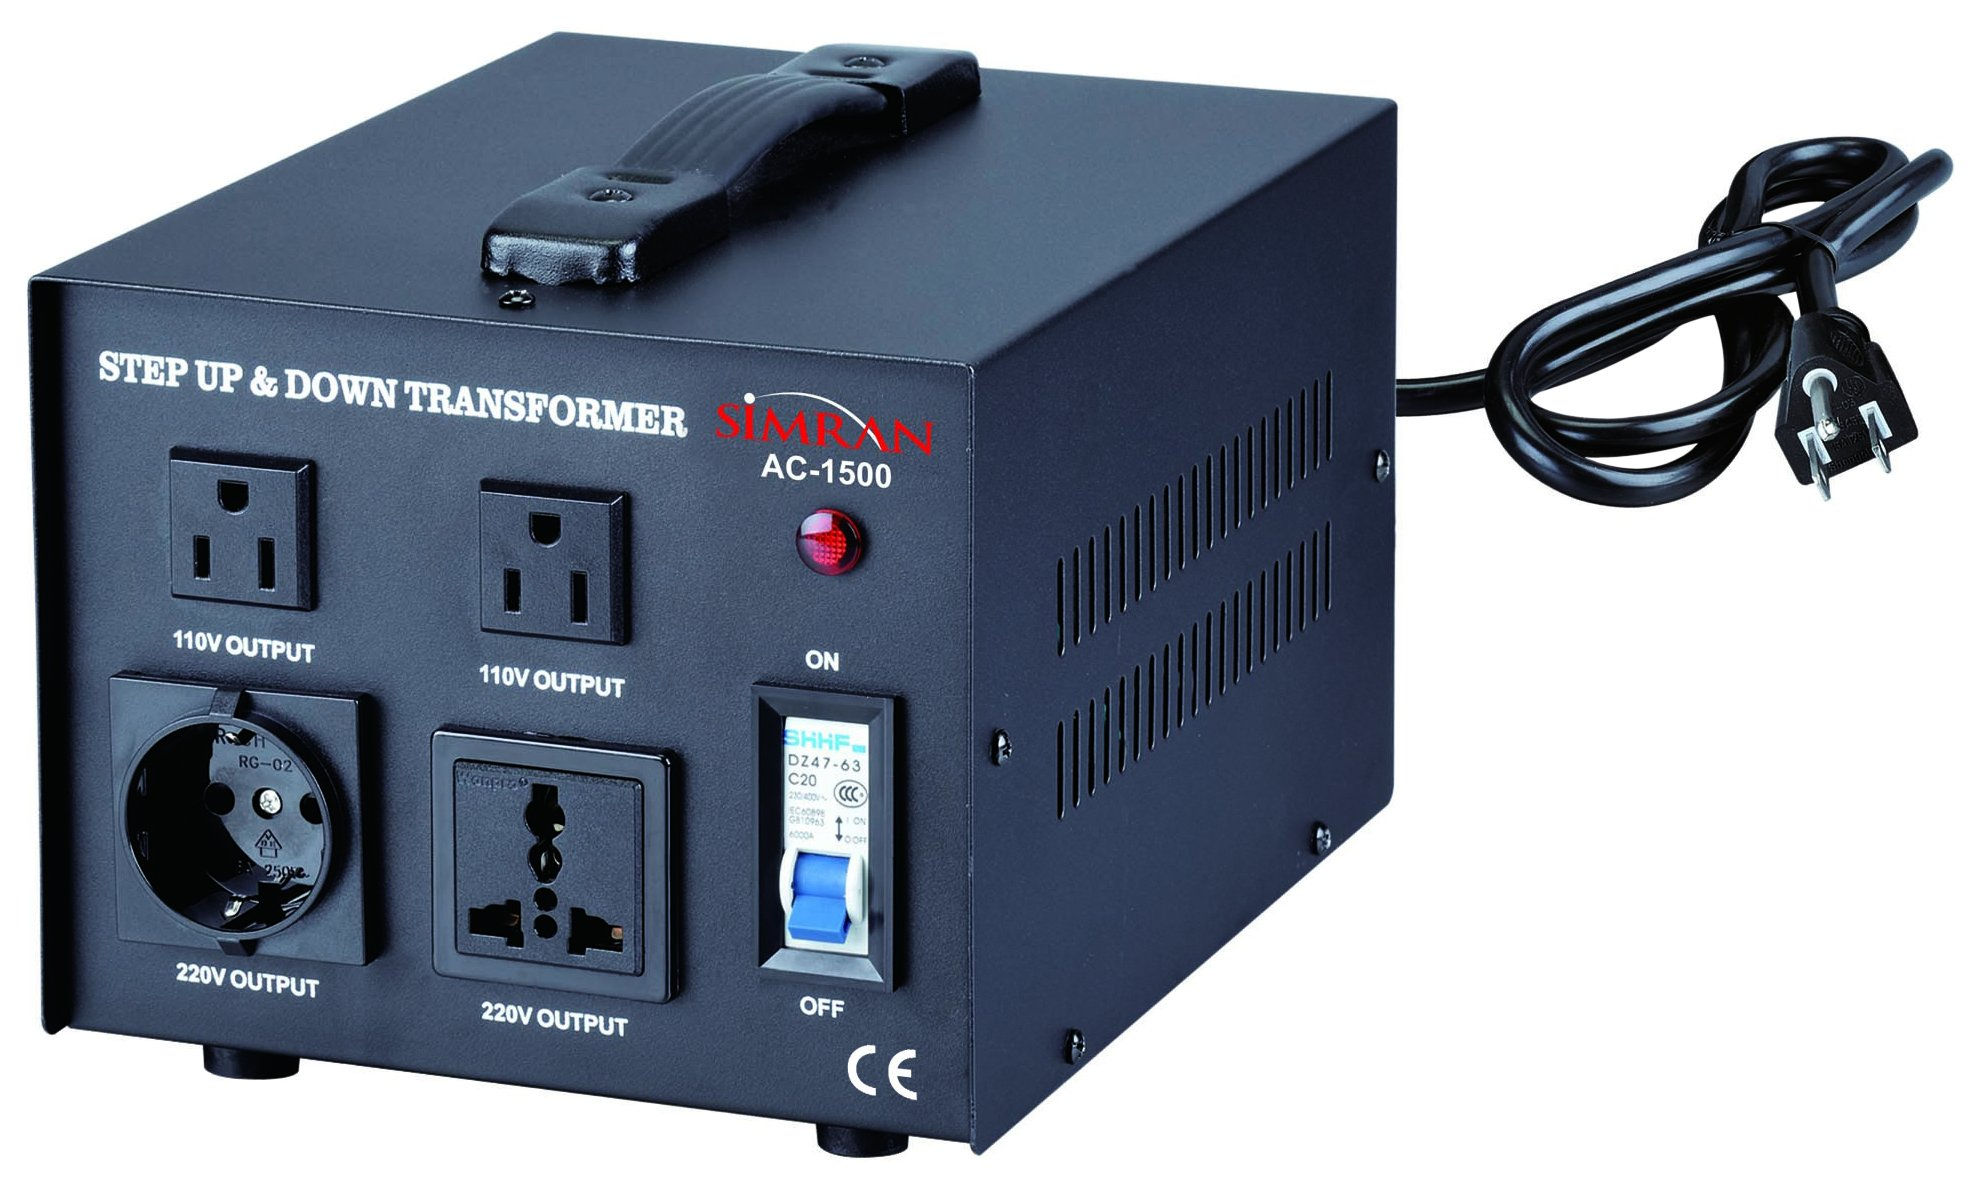 Simran Voltage Transformer, 1500 Watt, Step Up and Down, 110 Volt, 220 Volt Power Converter, Black (ACN-1500)